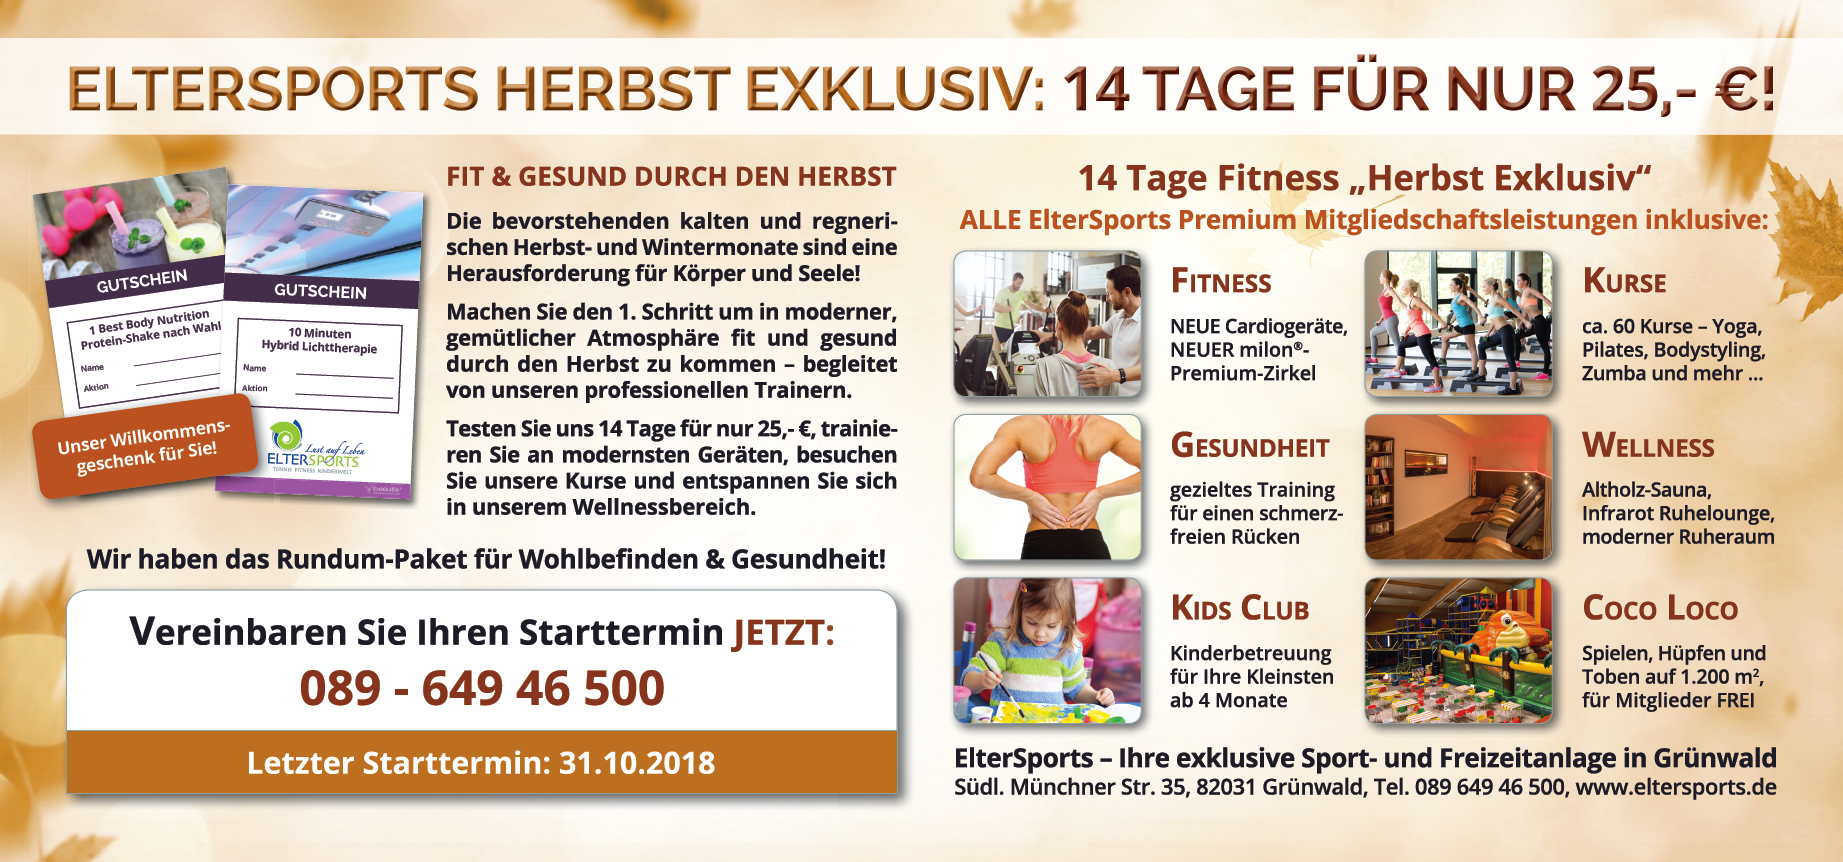 ElterSports Herbstaktion 2018-2